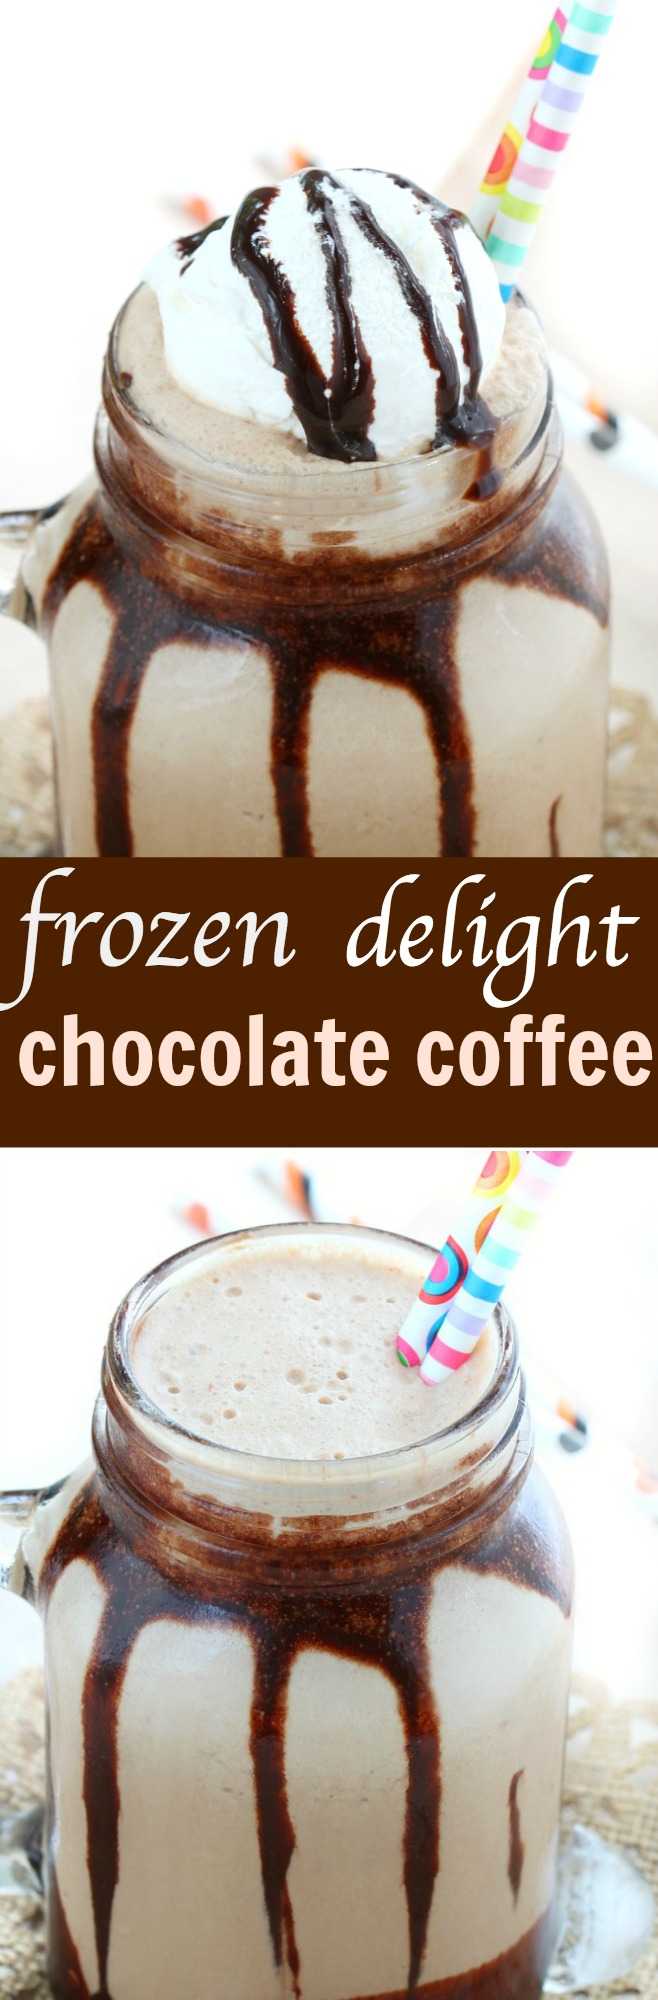 frozen chocolate coffee delight